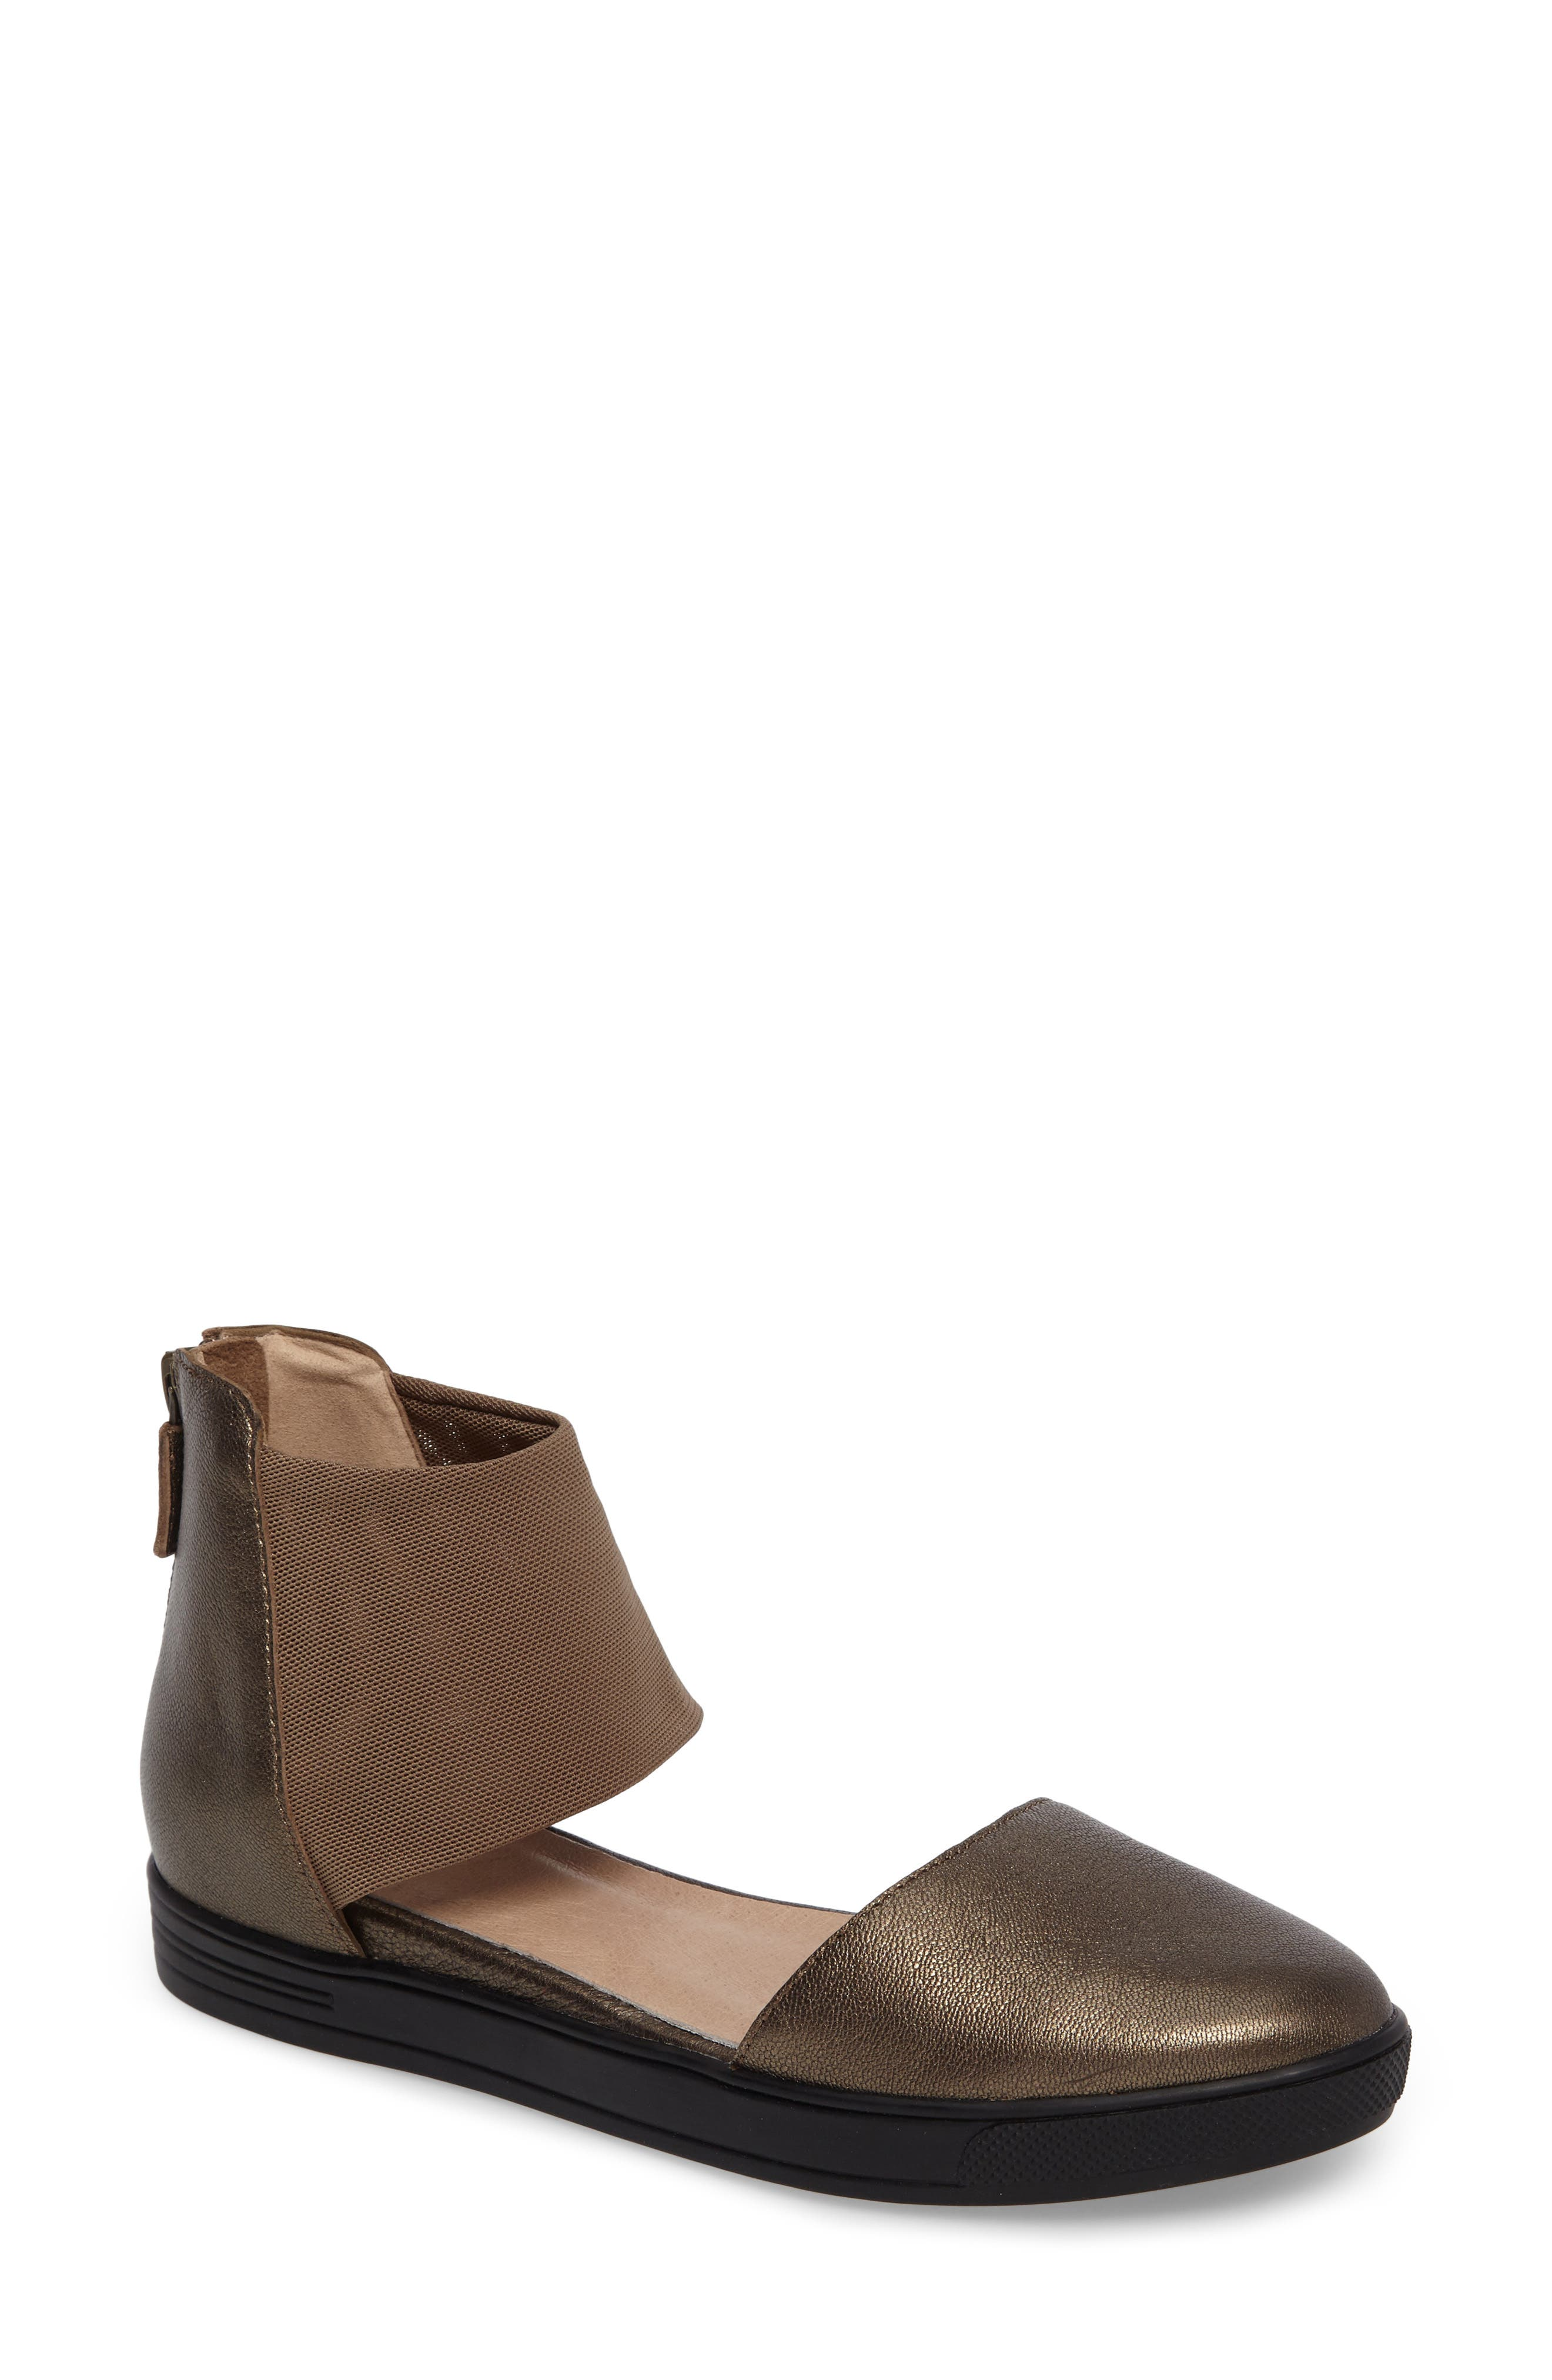 Alternate Image 1 Selected - Eileen Fisher Powell Ankle Cuff Sandal(Women)